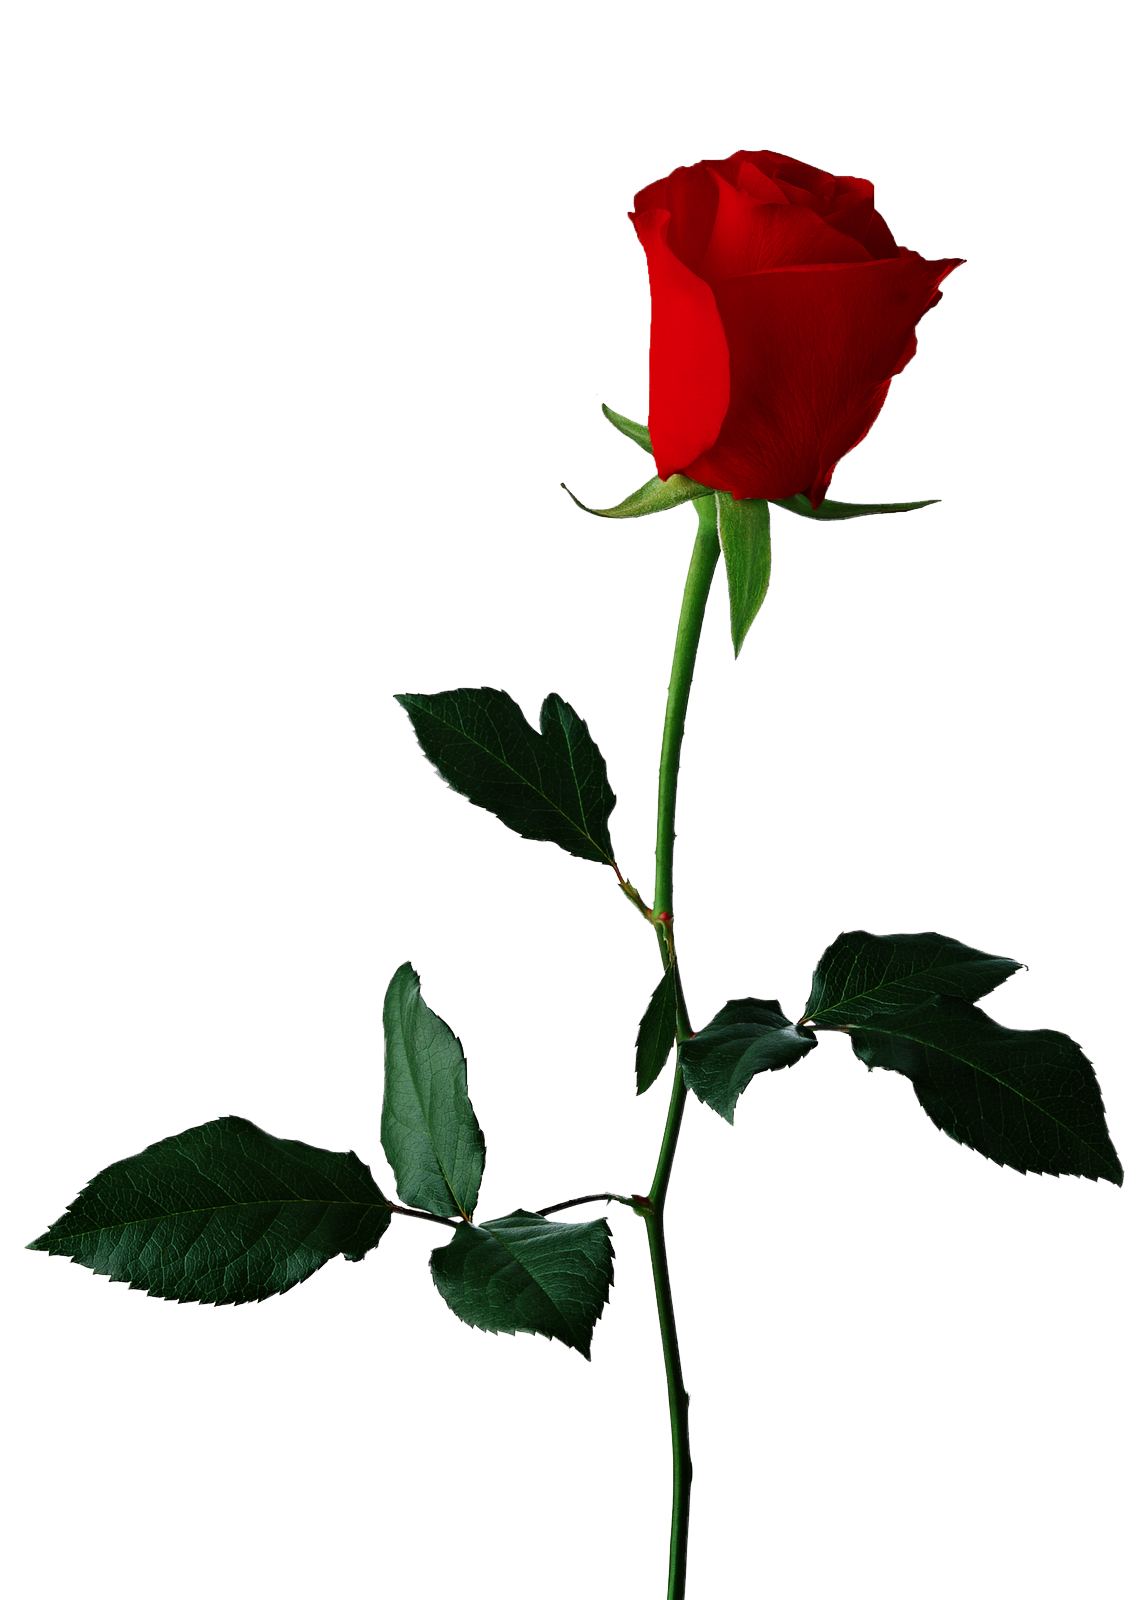 Rose clipart clear background. Transparent check all